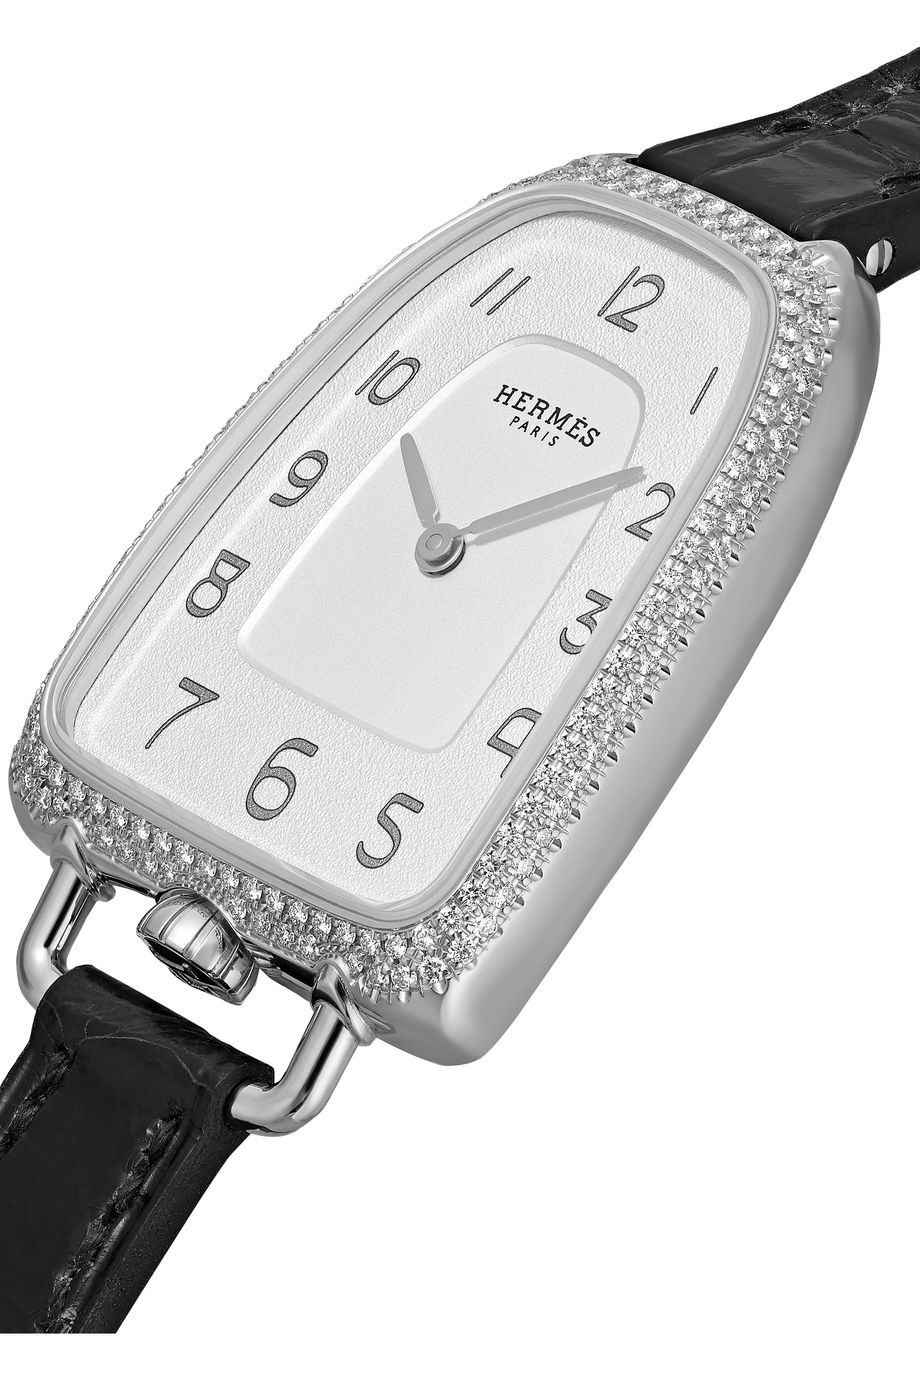 Hermès Timepieces Montre en acier inoxydable et diamants à bracelet en alligator Galop d'Hermès Medium 26 mm